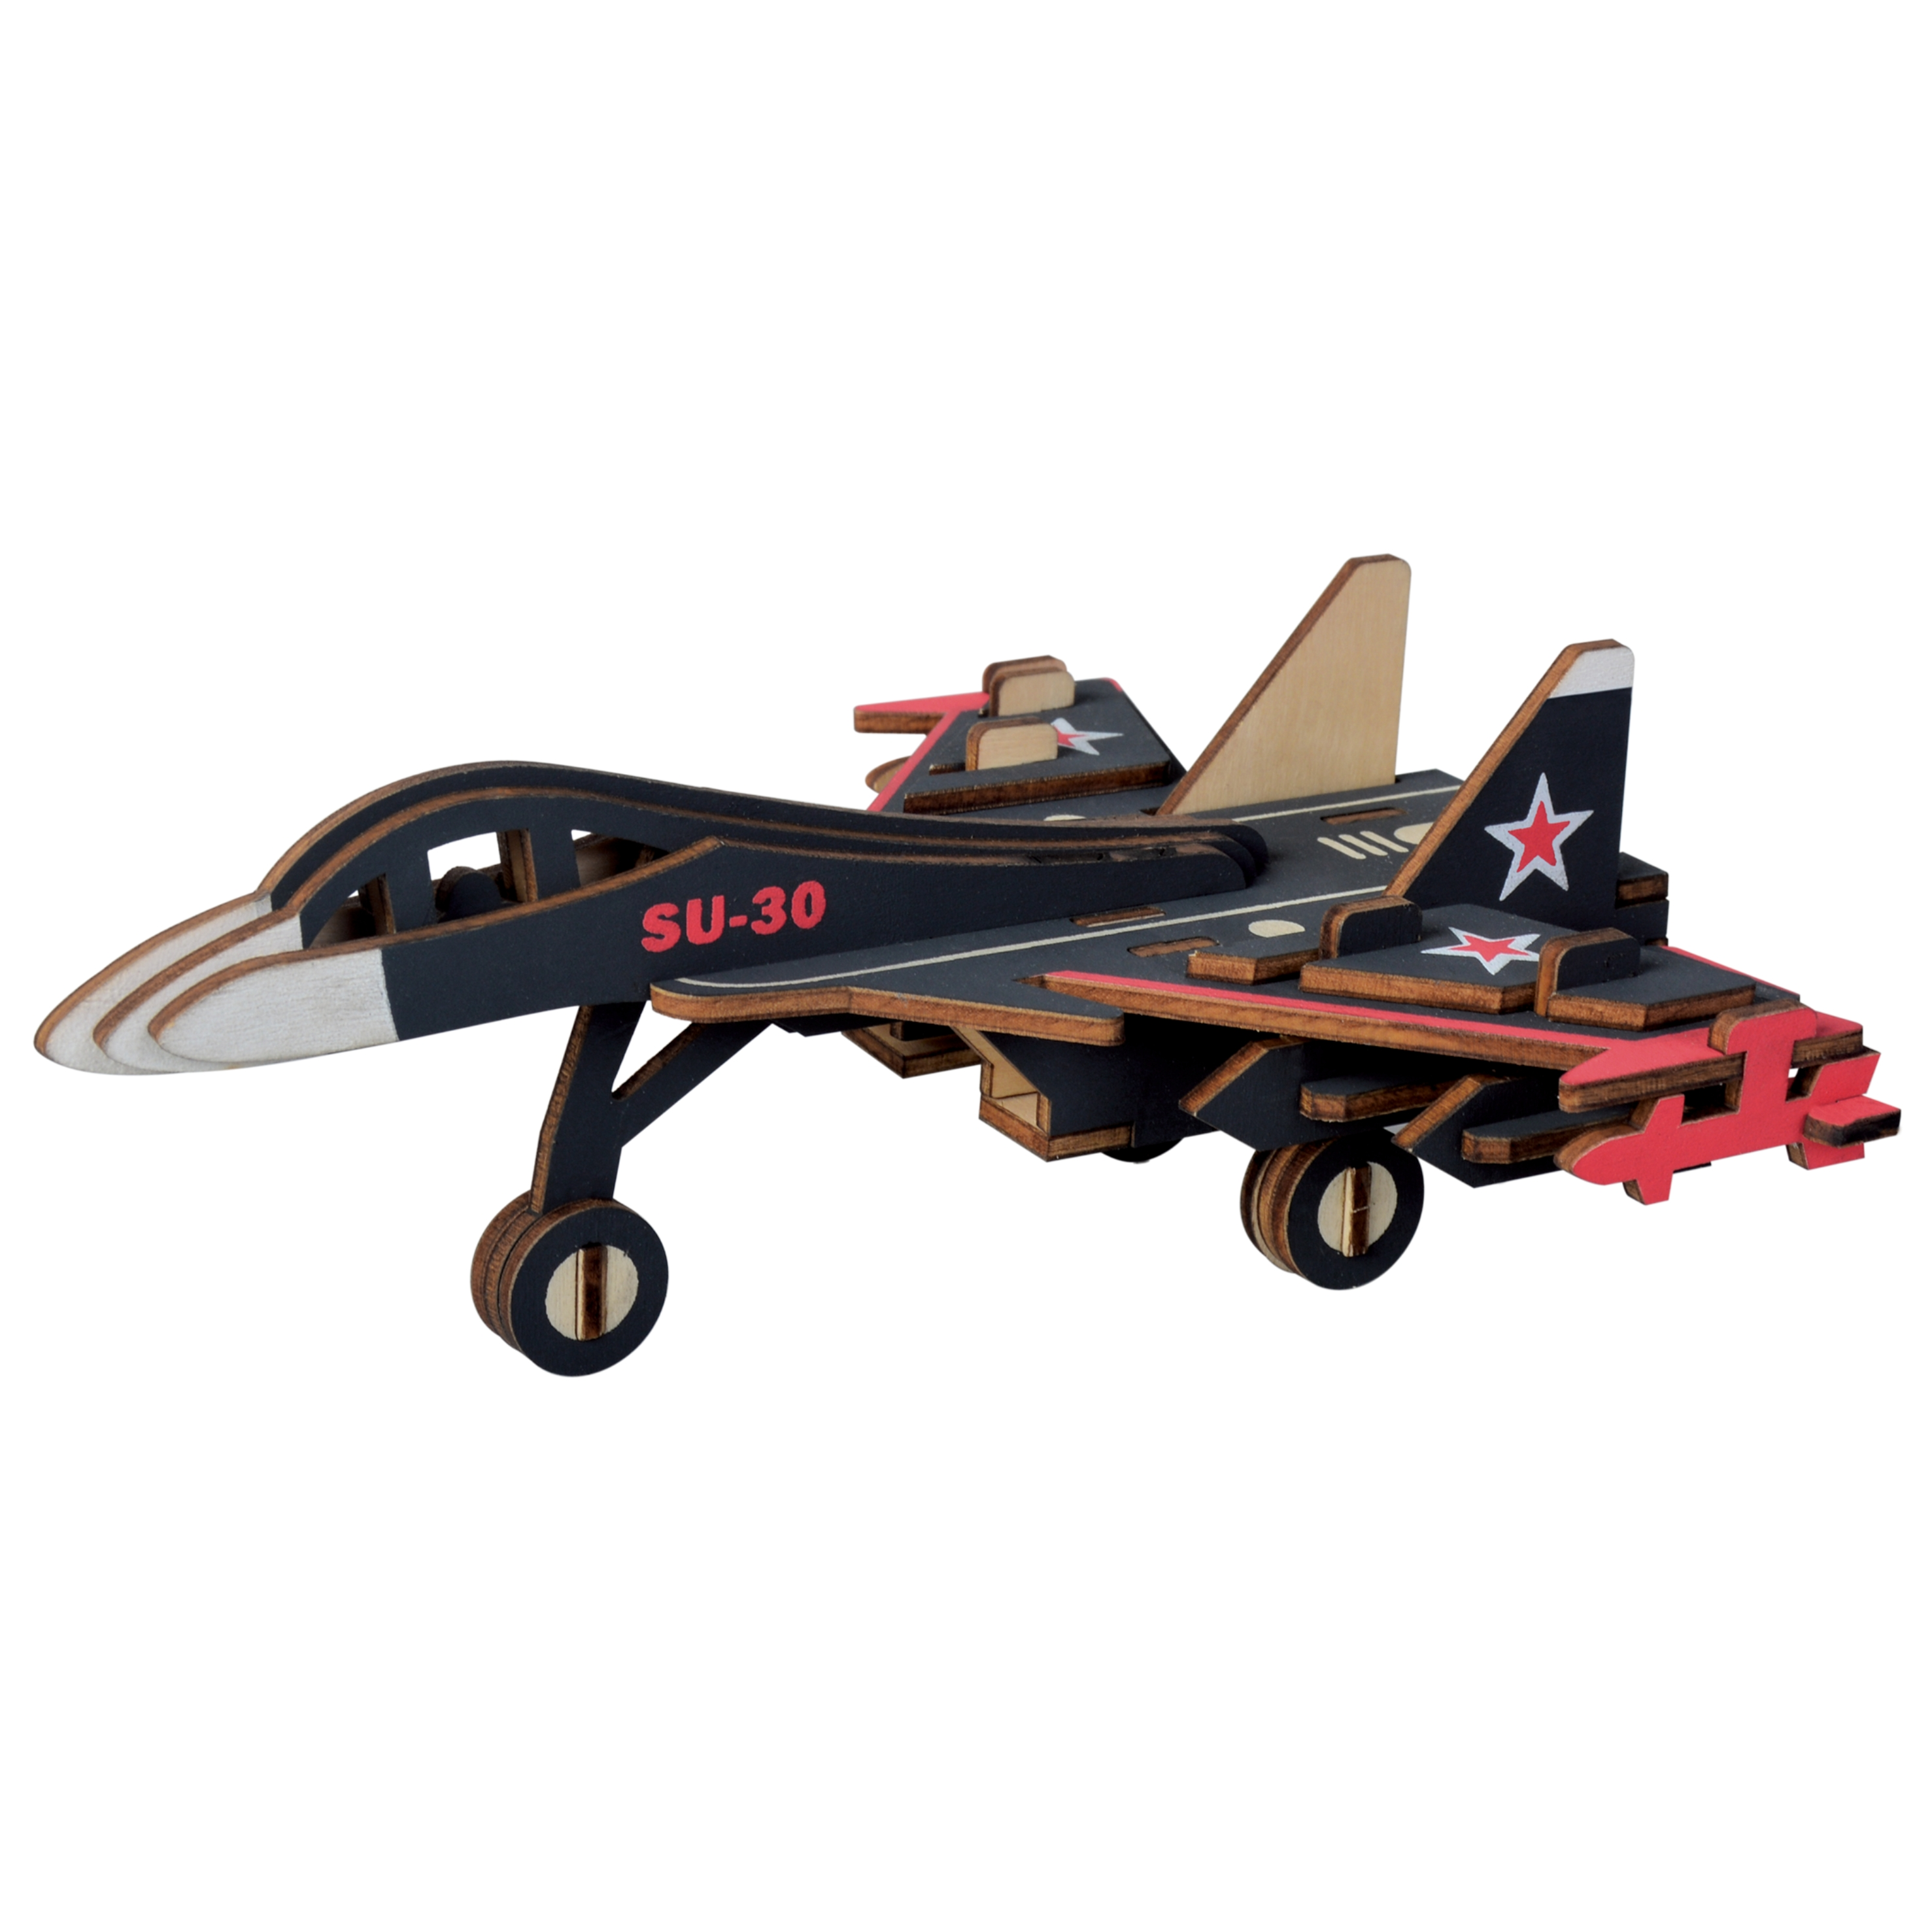 3D Puzzle Jigsaw Wooden Toys Smart Games DIY Assembly Kit 4 Styles Military Fighter Kids Learning Educational Toys For Children